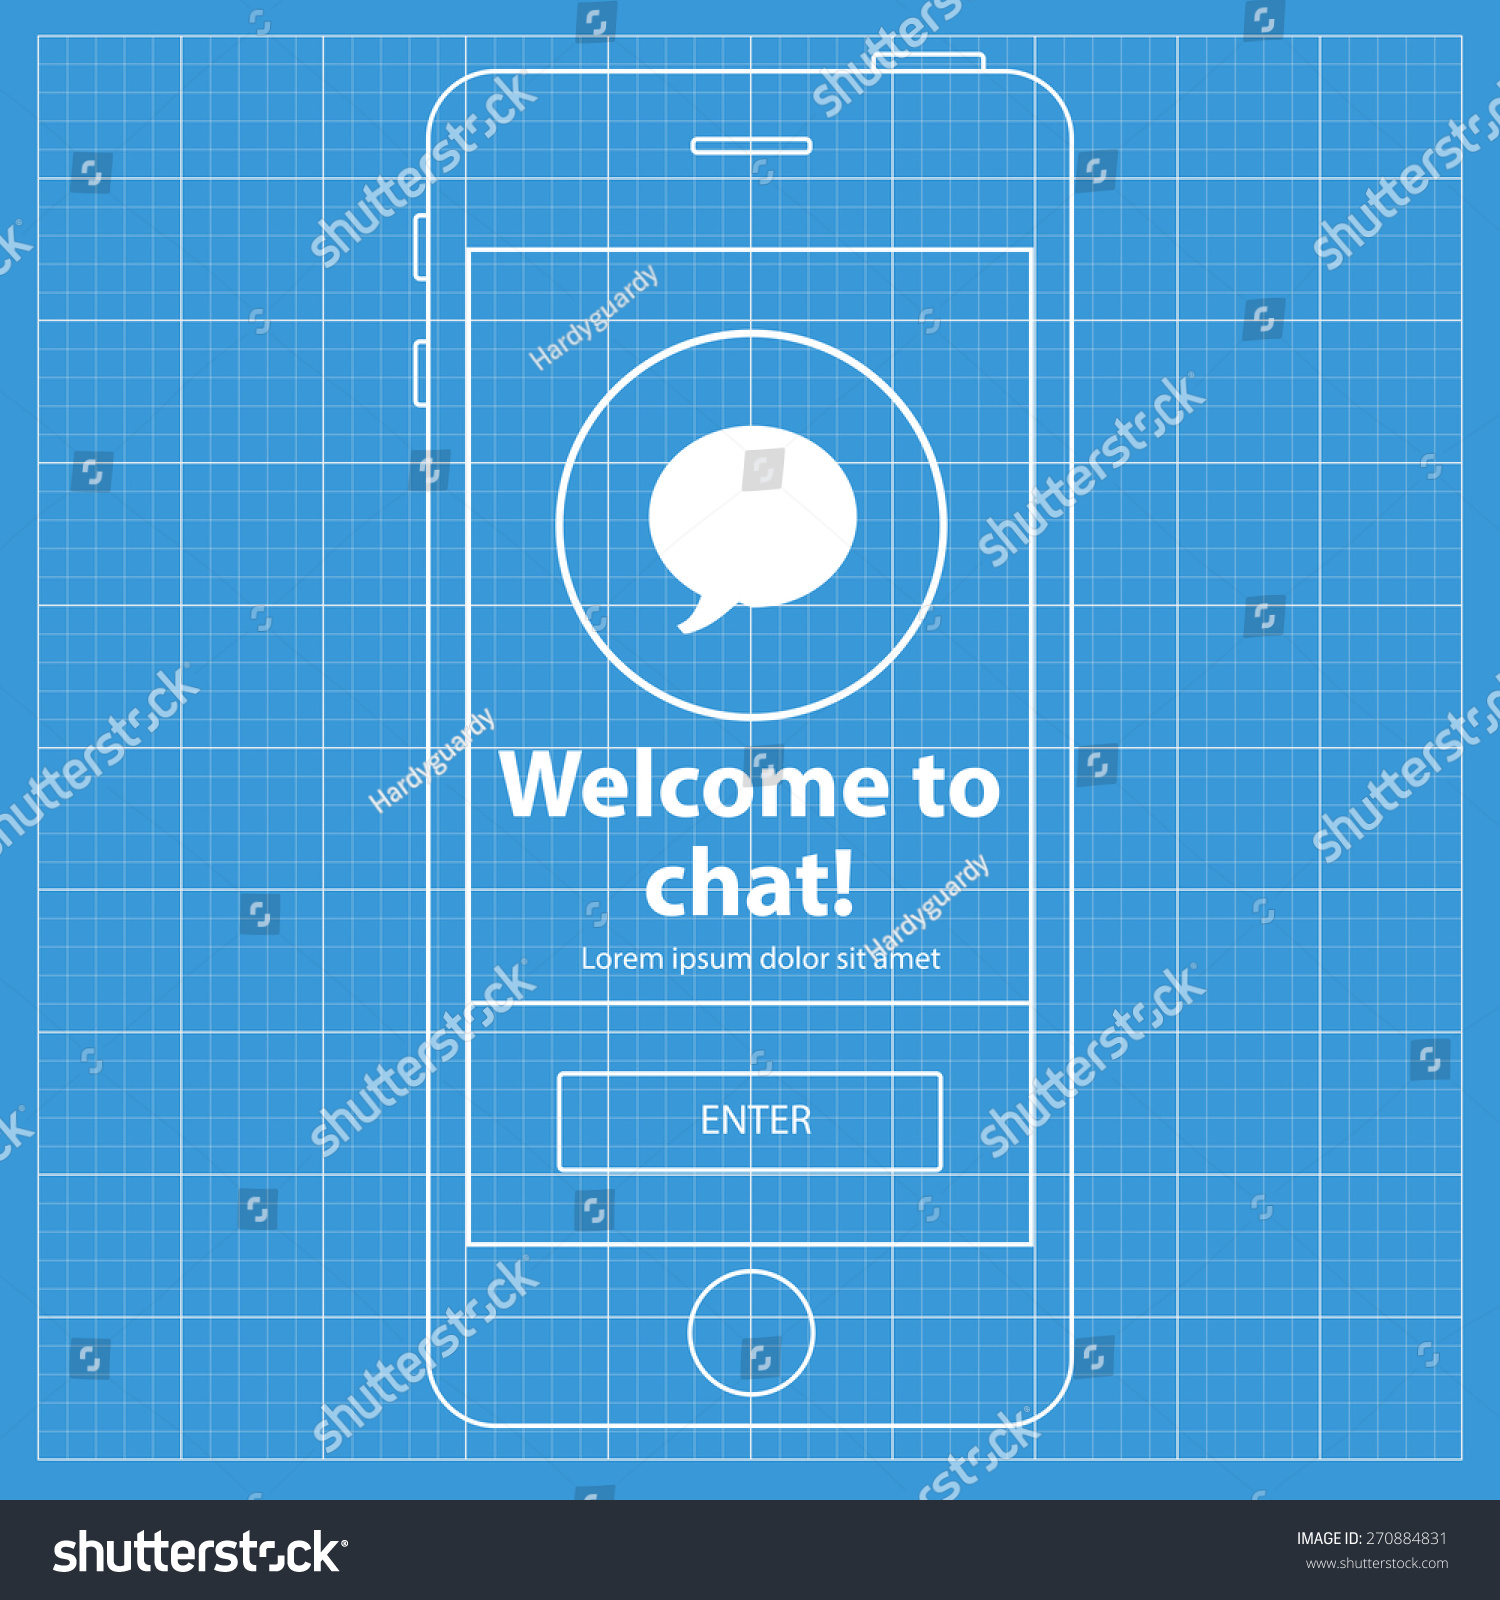 Mobile blueprint wireframe app screen welcome vectores en stock mobile blueprint wireframe app screen welcome to chat screen which can be used as a malvernweather